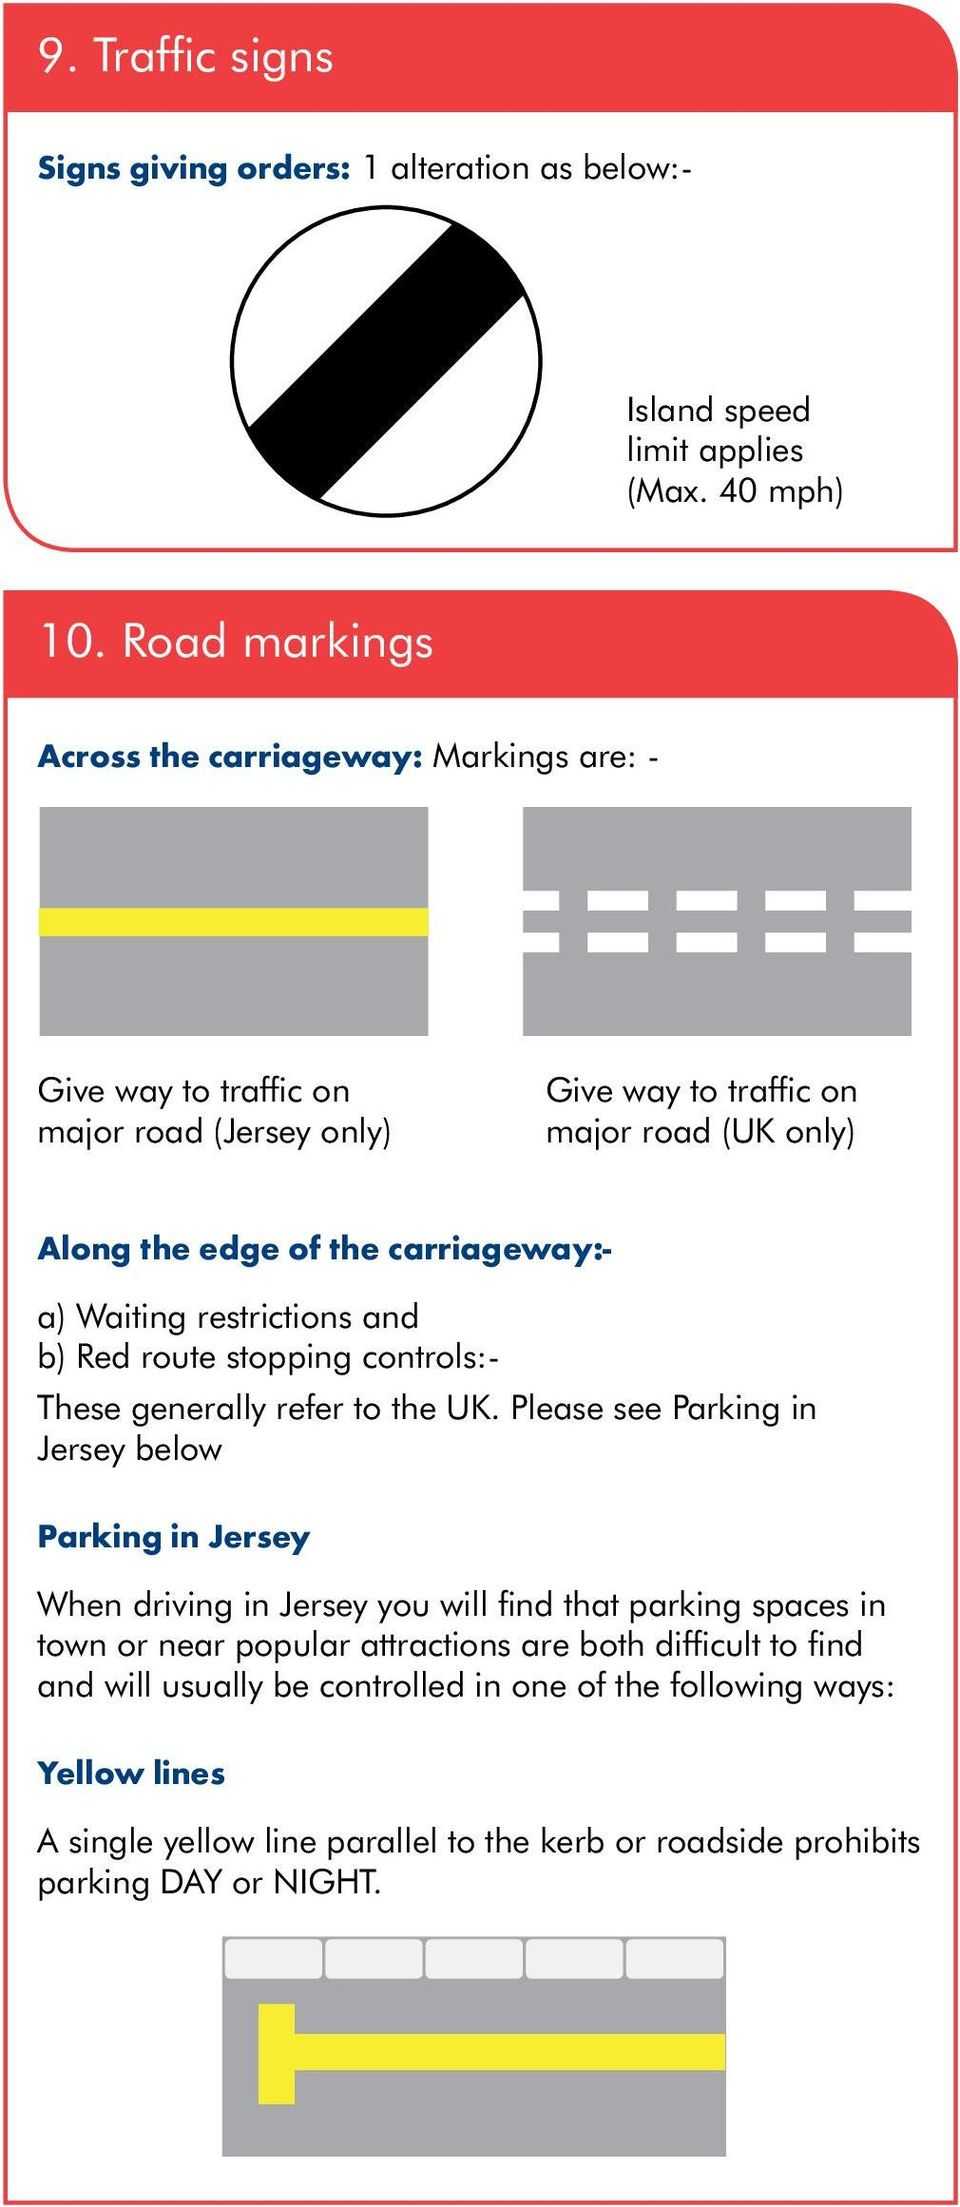 carriageway: a) Waiting restrictions and b) Red route stopping controls: These generally refer to the UK.